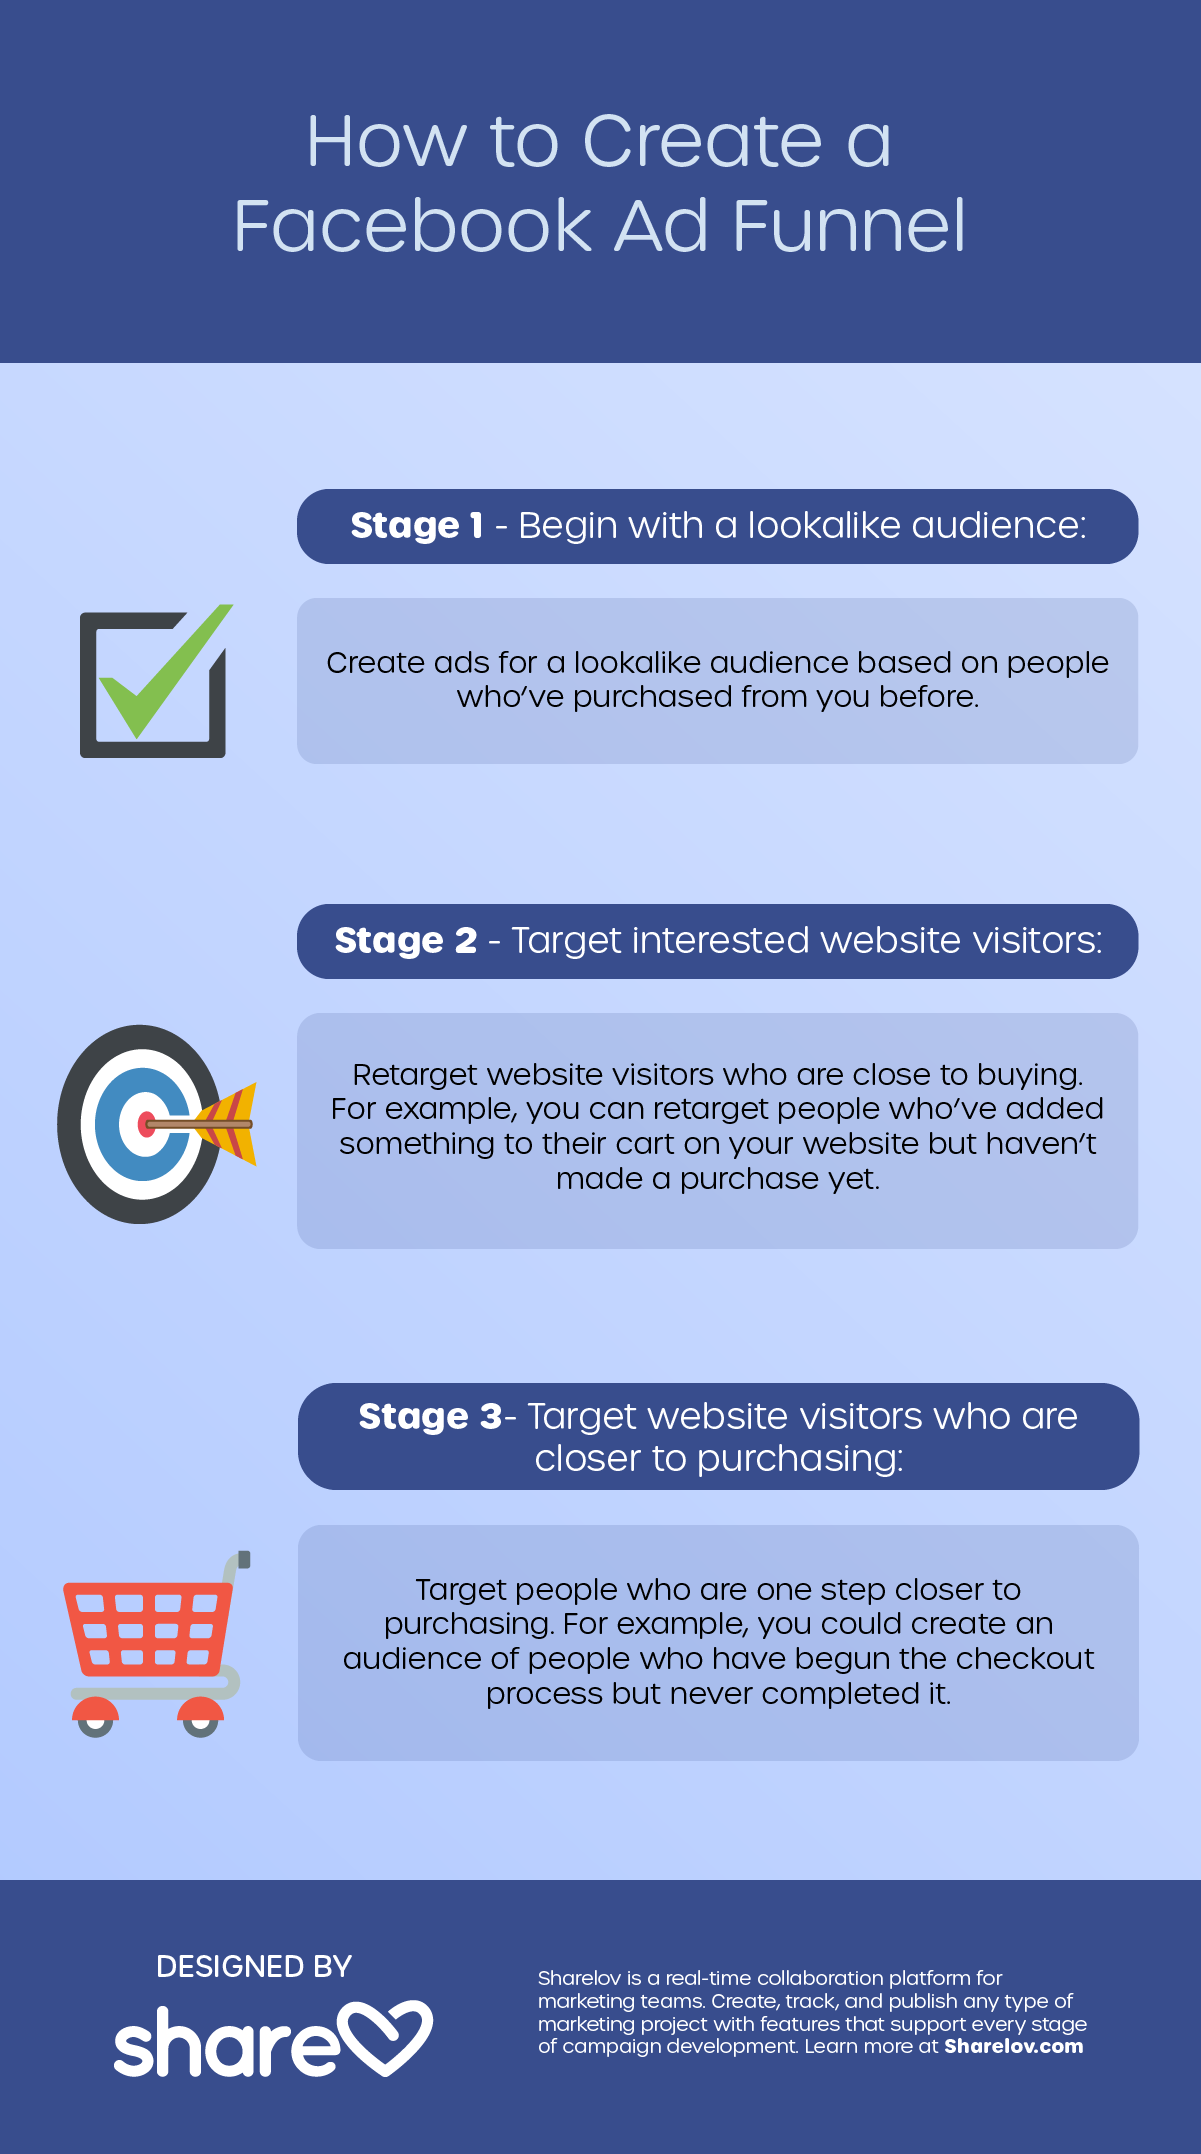 How to Create a Facebook Ad Funnel infographic